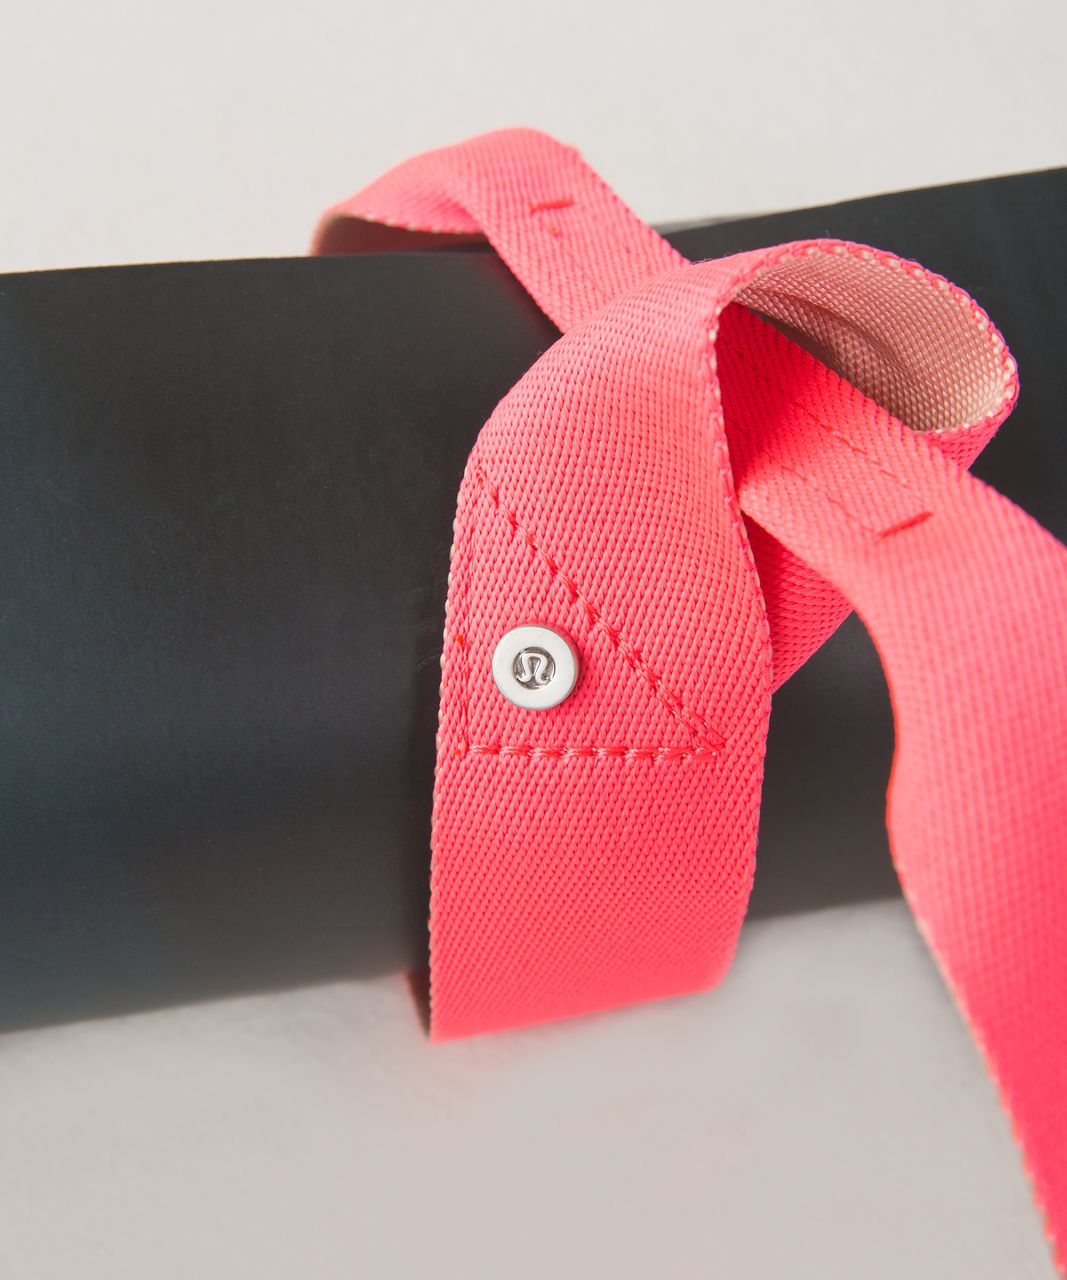 Lululemon Loop It Up Mat Strap - Electric Coral / Butter Pink